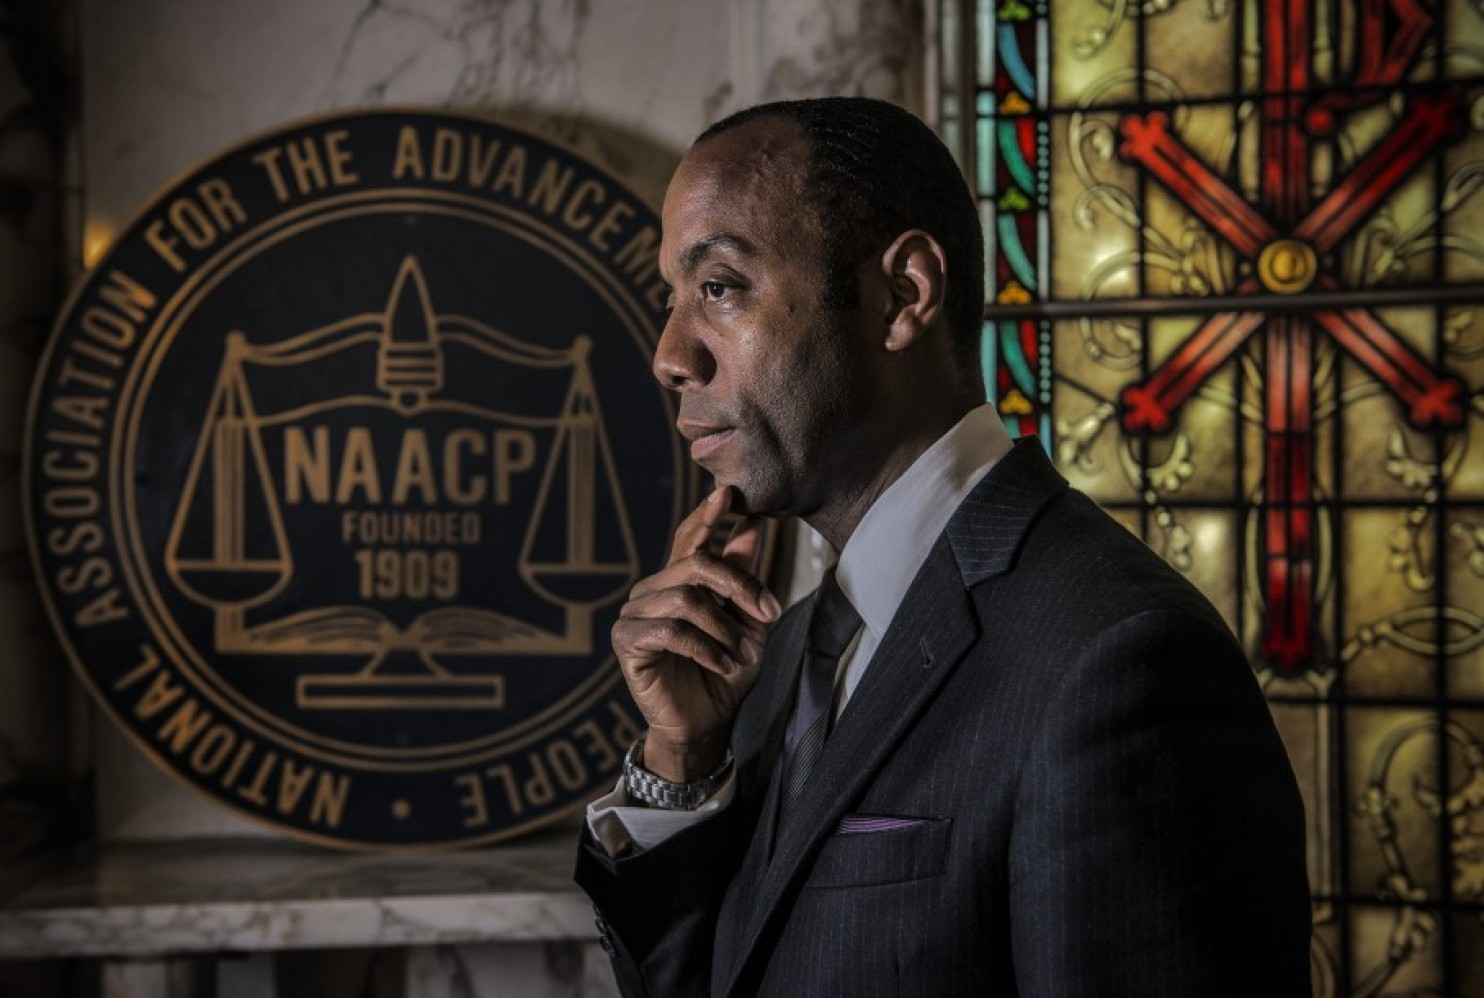 Pres_Brooks_NAACP_2014.jpg